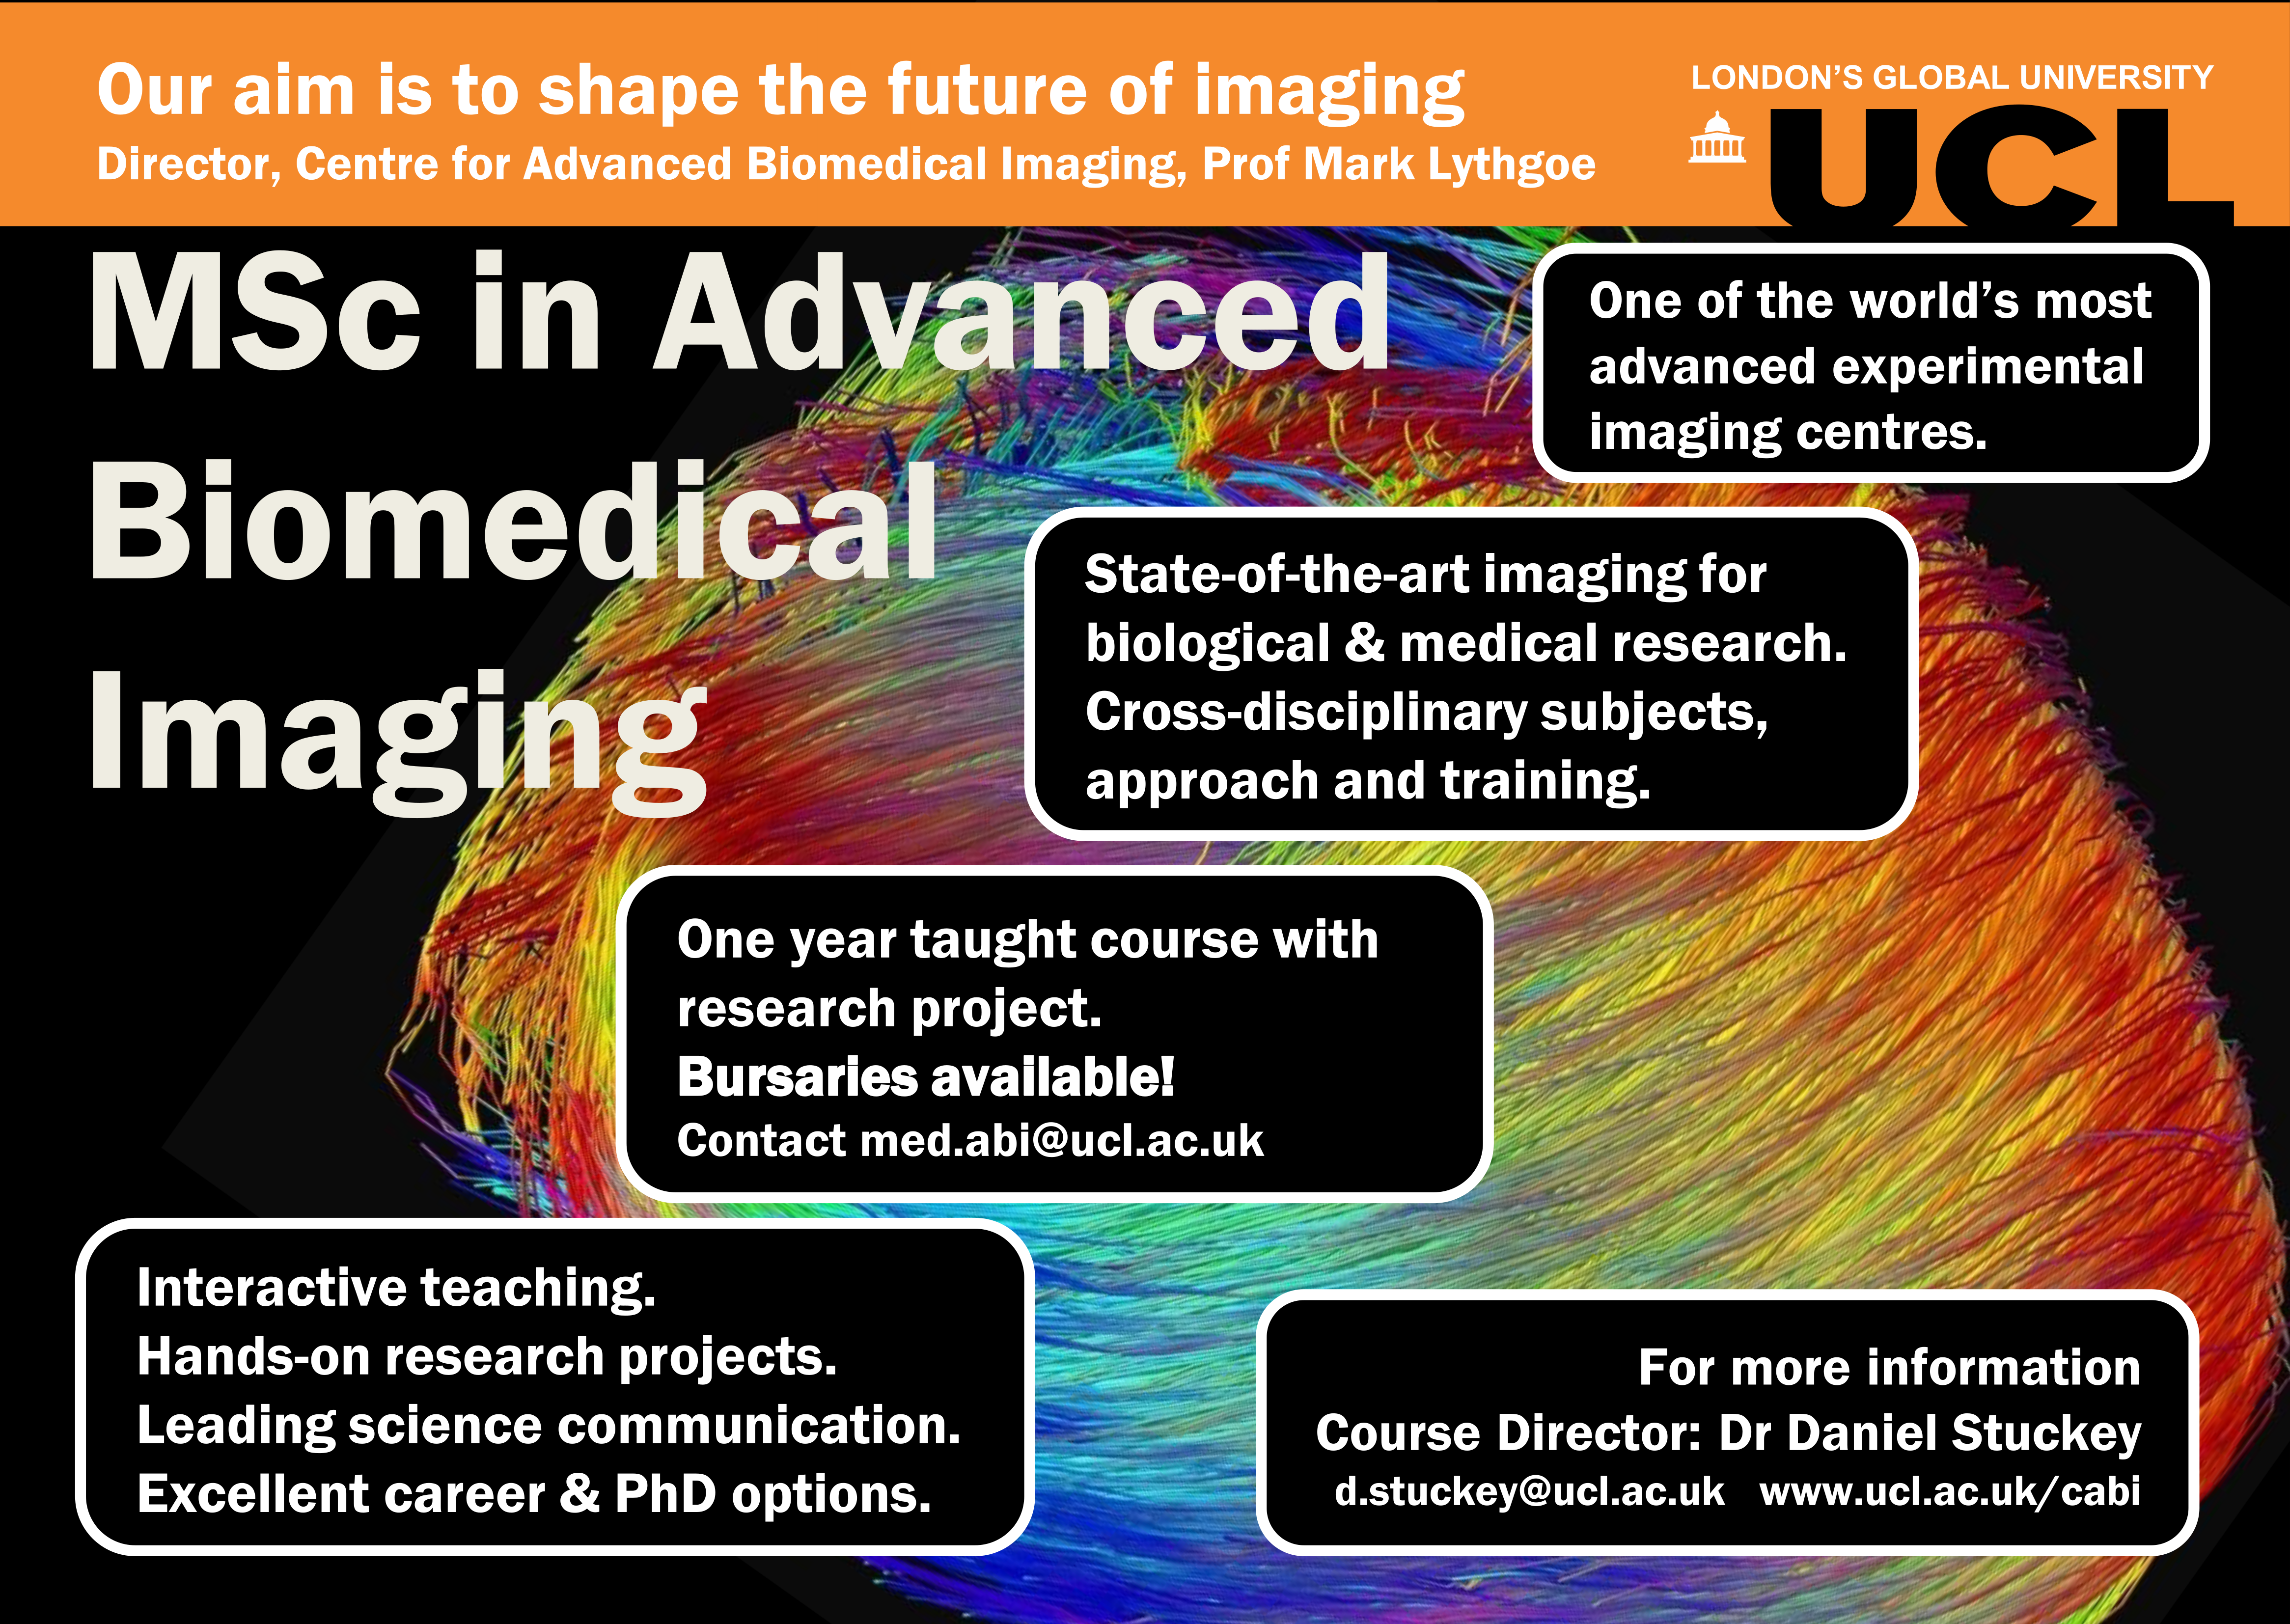 MSc Advanced Biomedical Imaging